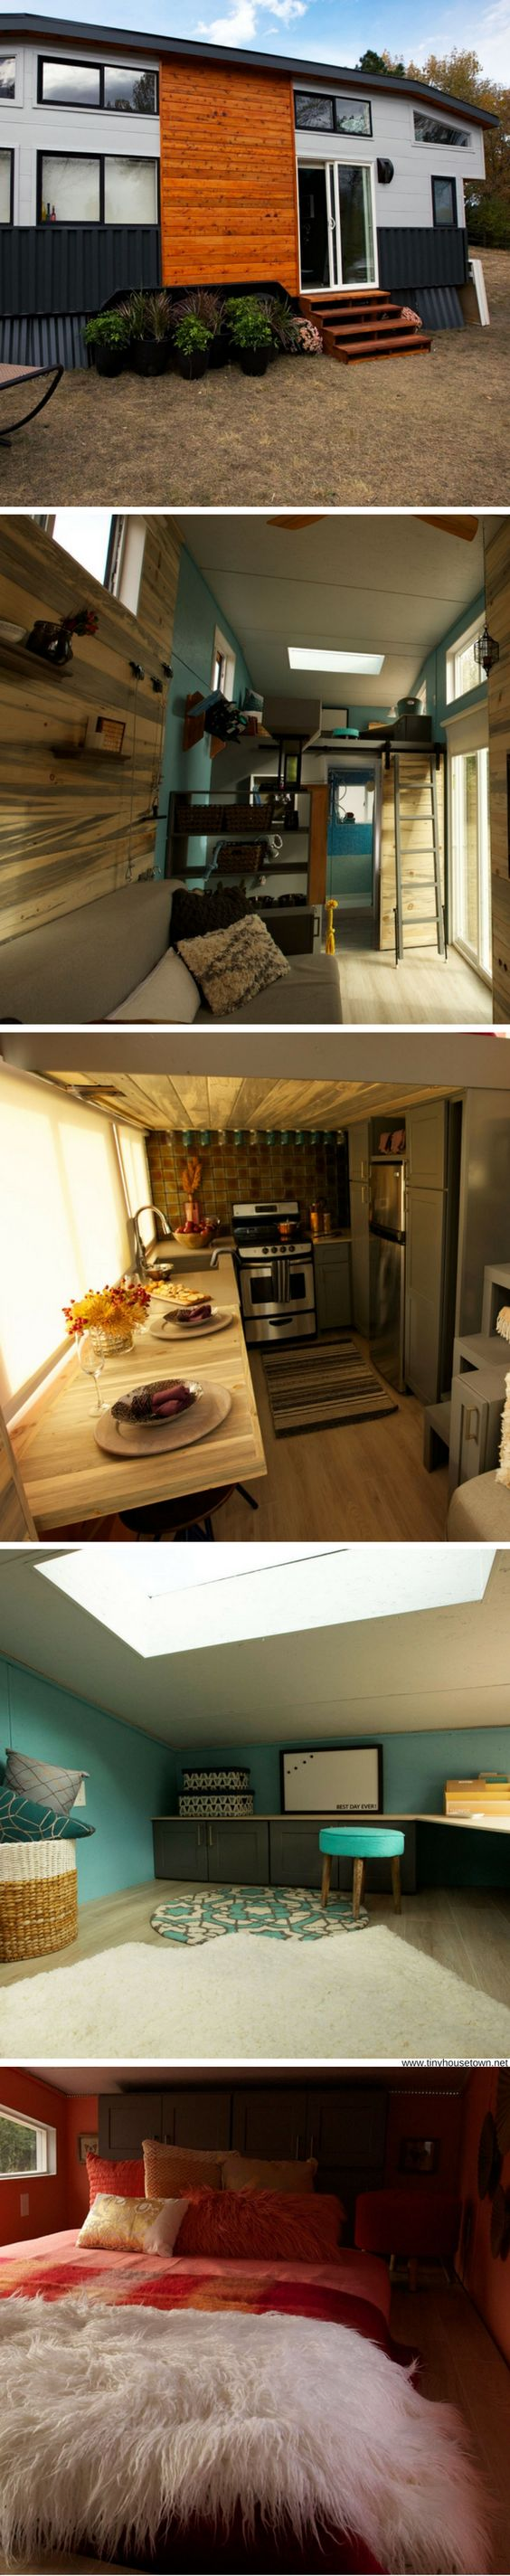 A 300 Sq Ft Tiny House With An Entertainment Room Space